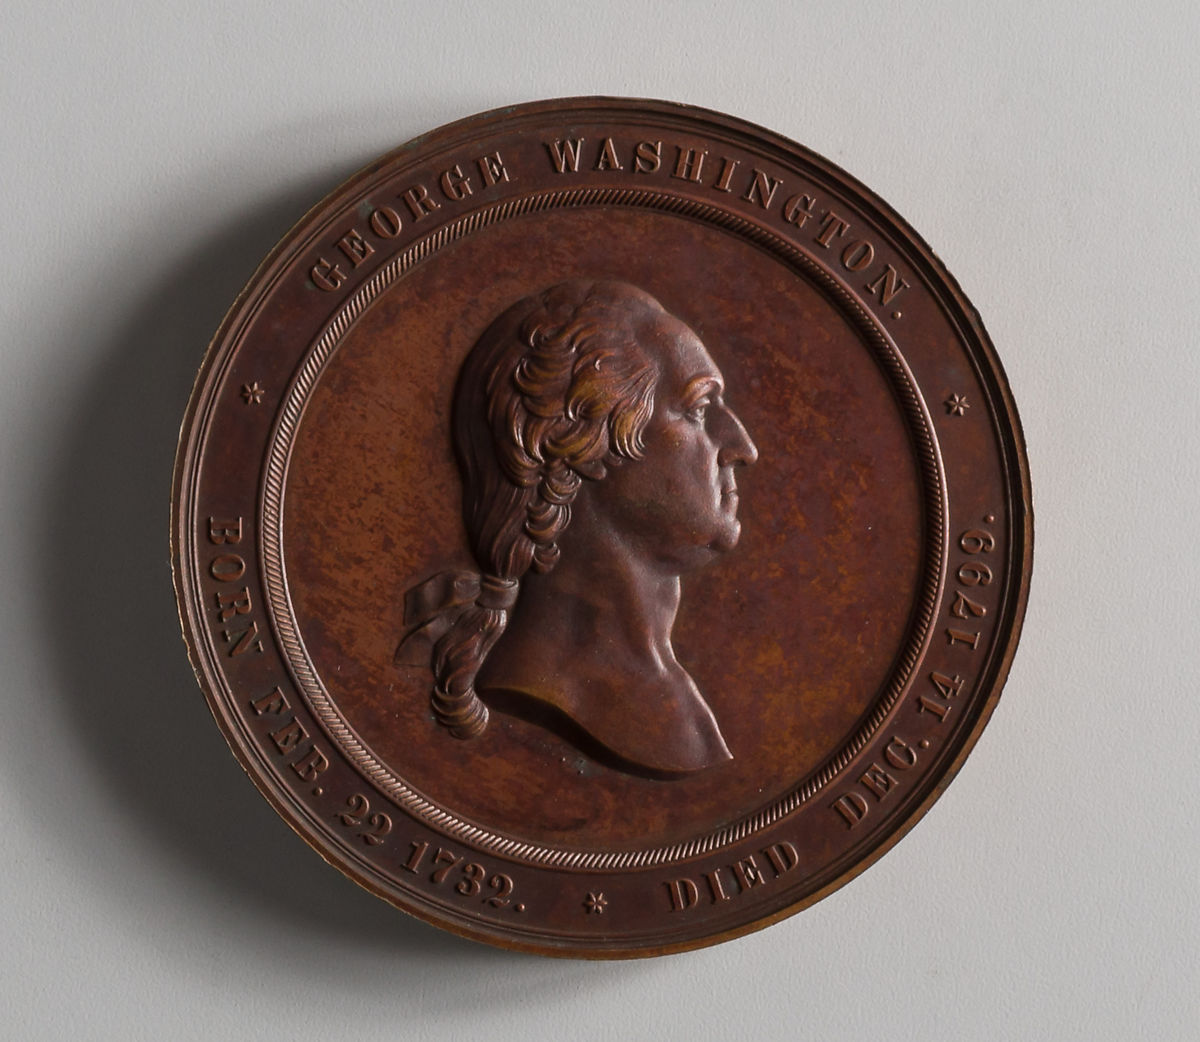 Anthony Paquet Inauguration Of The Washington Cabinet Of Medals